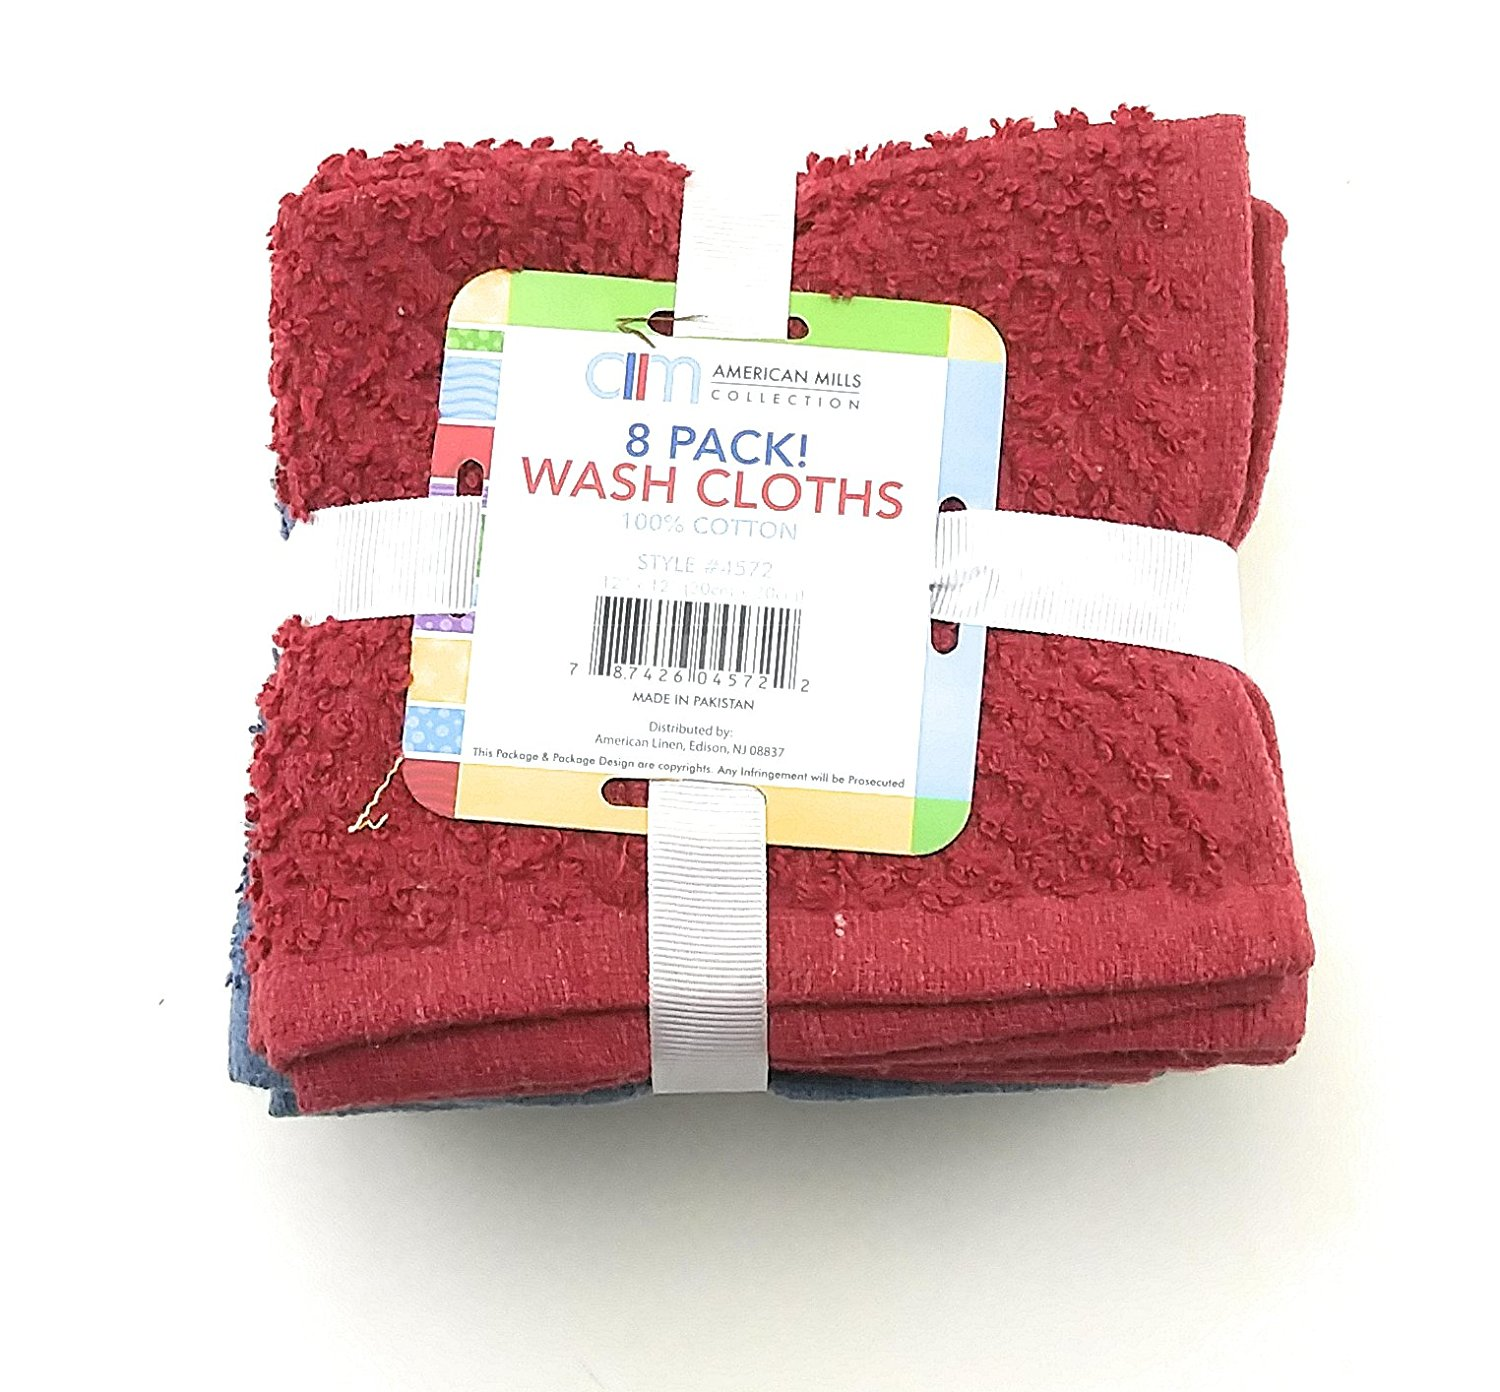 8 pack American Mills Cotton Washcloths